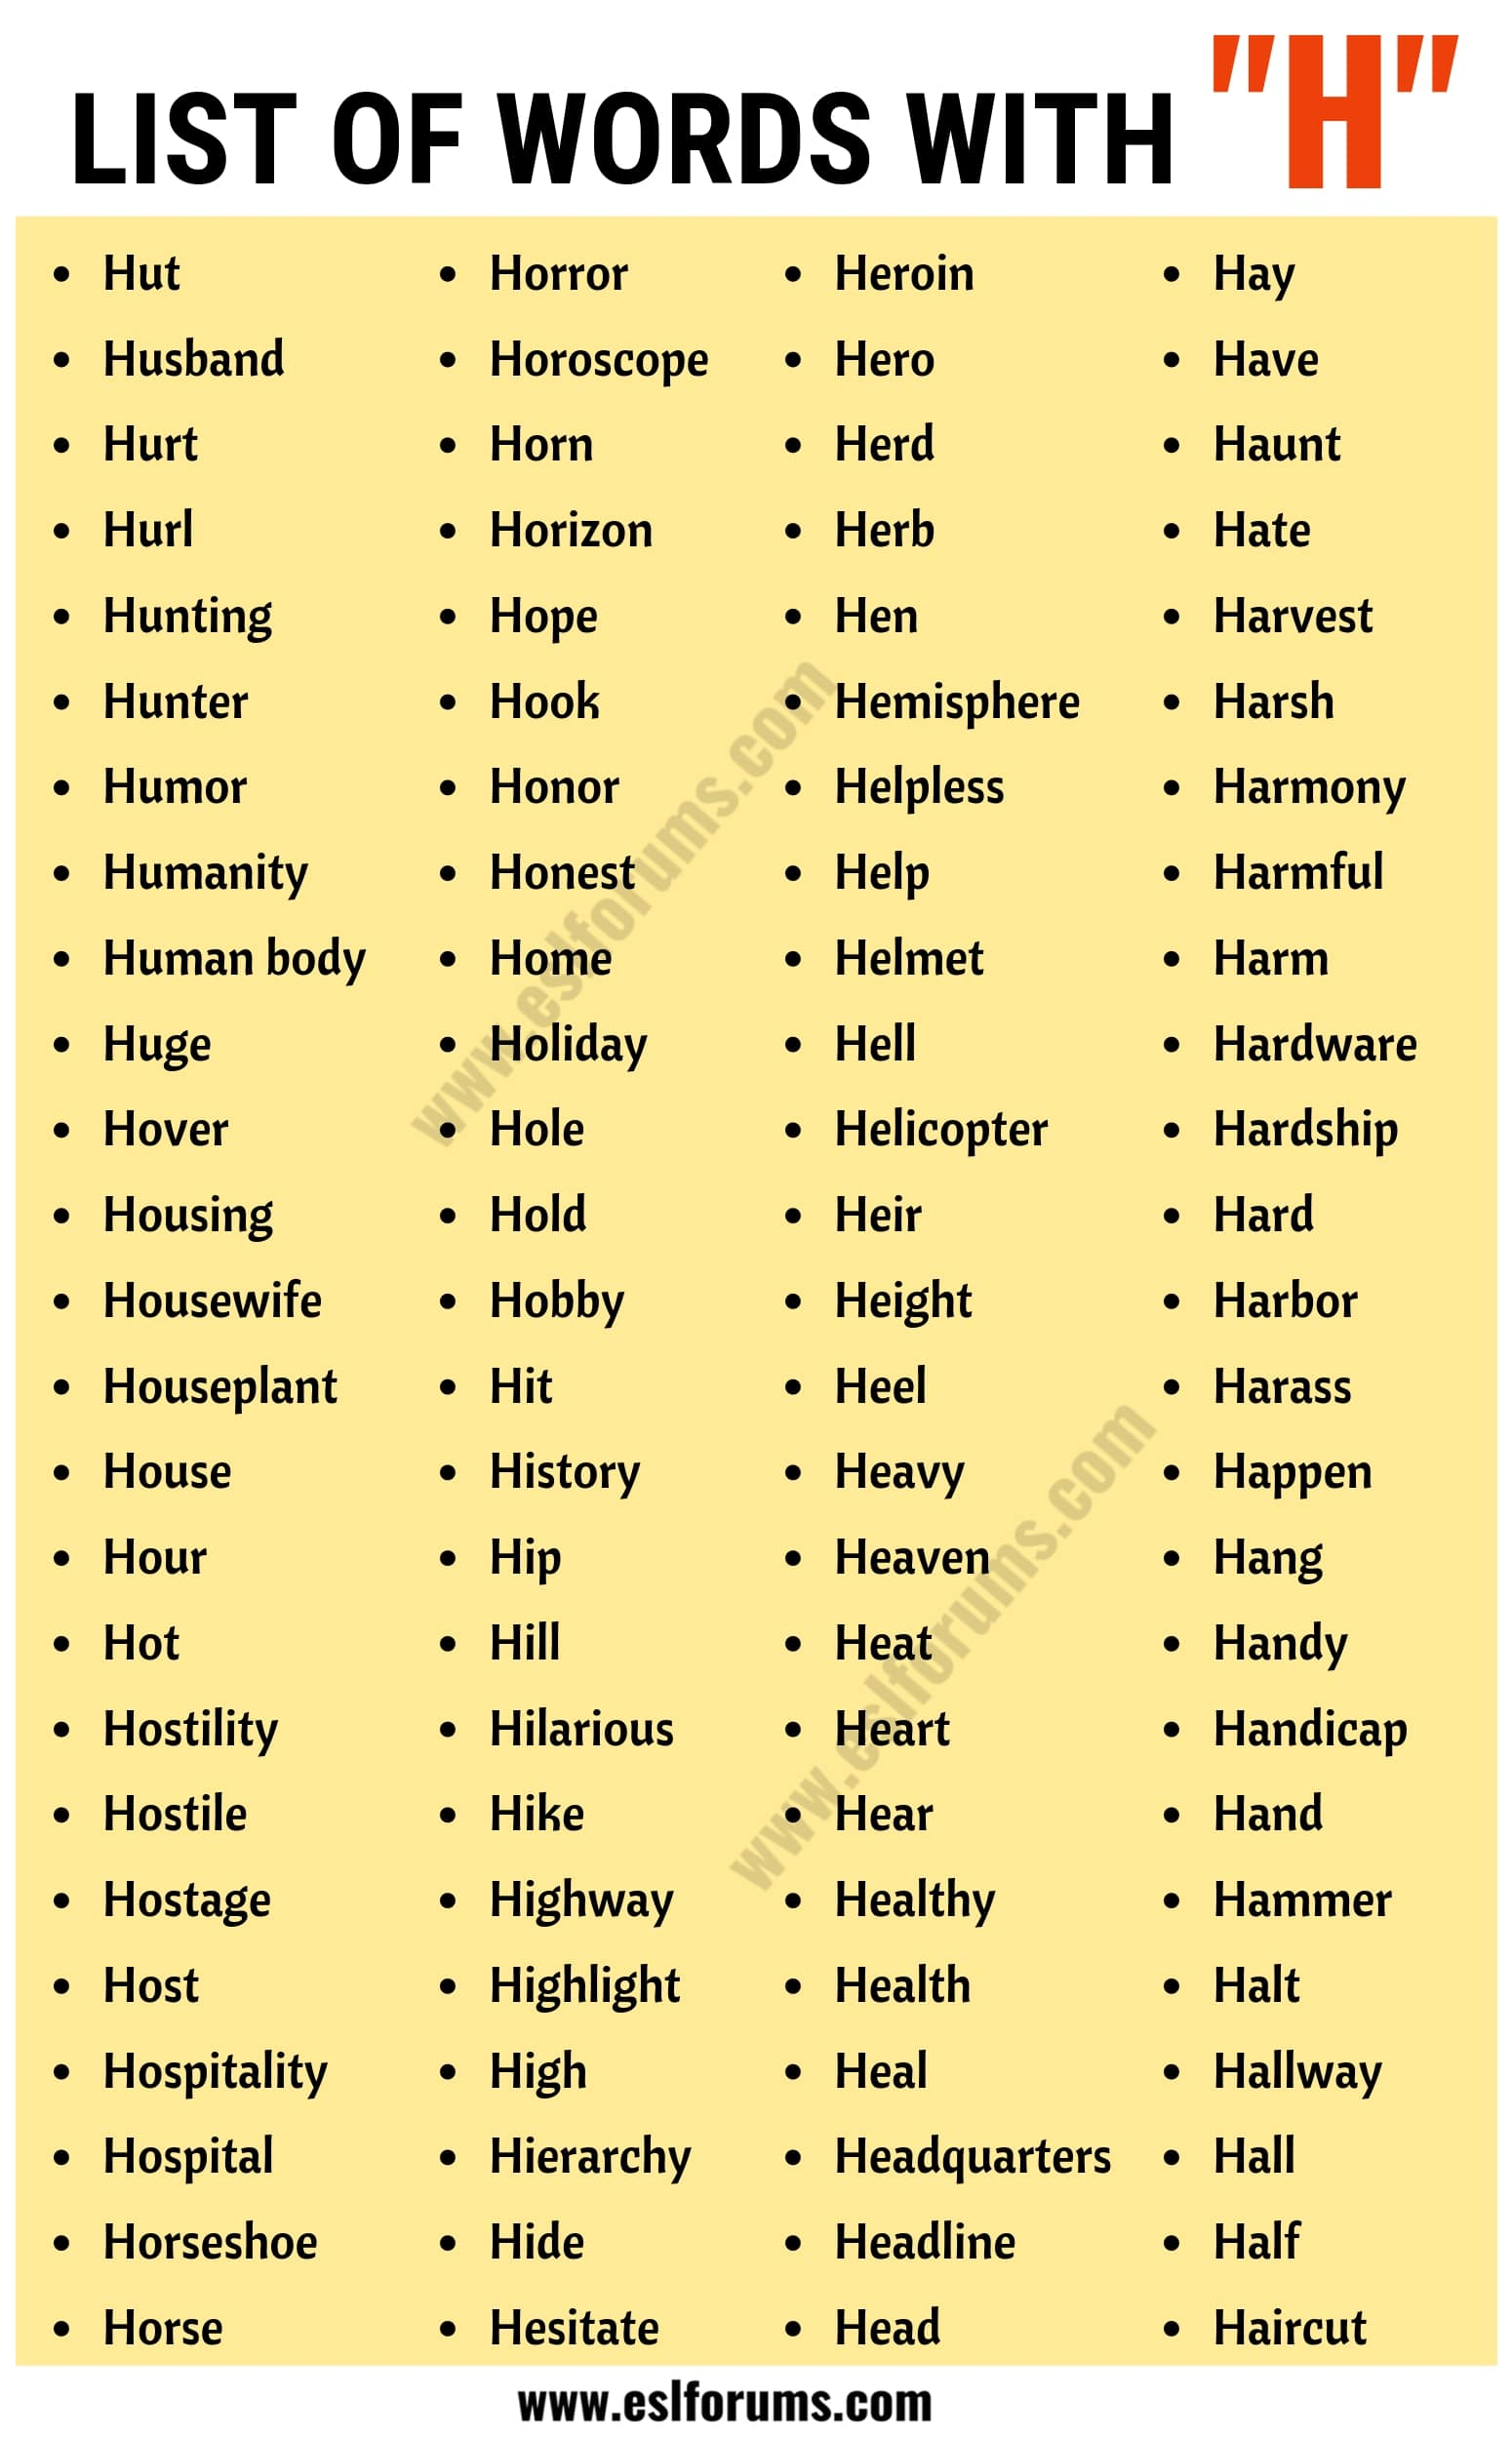 Words that Start with H | List of 100+ Words Starting with H in English